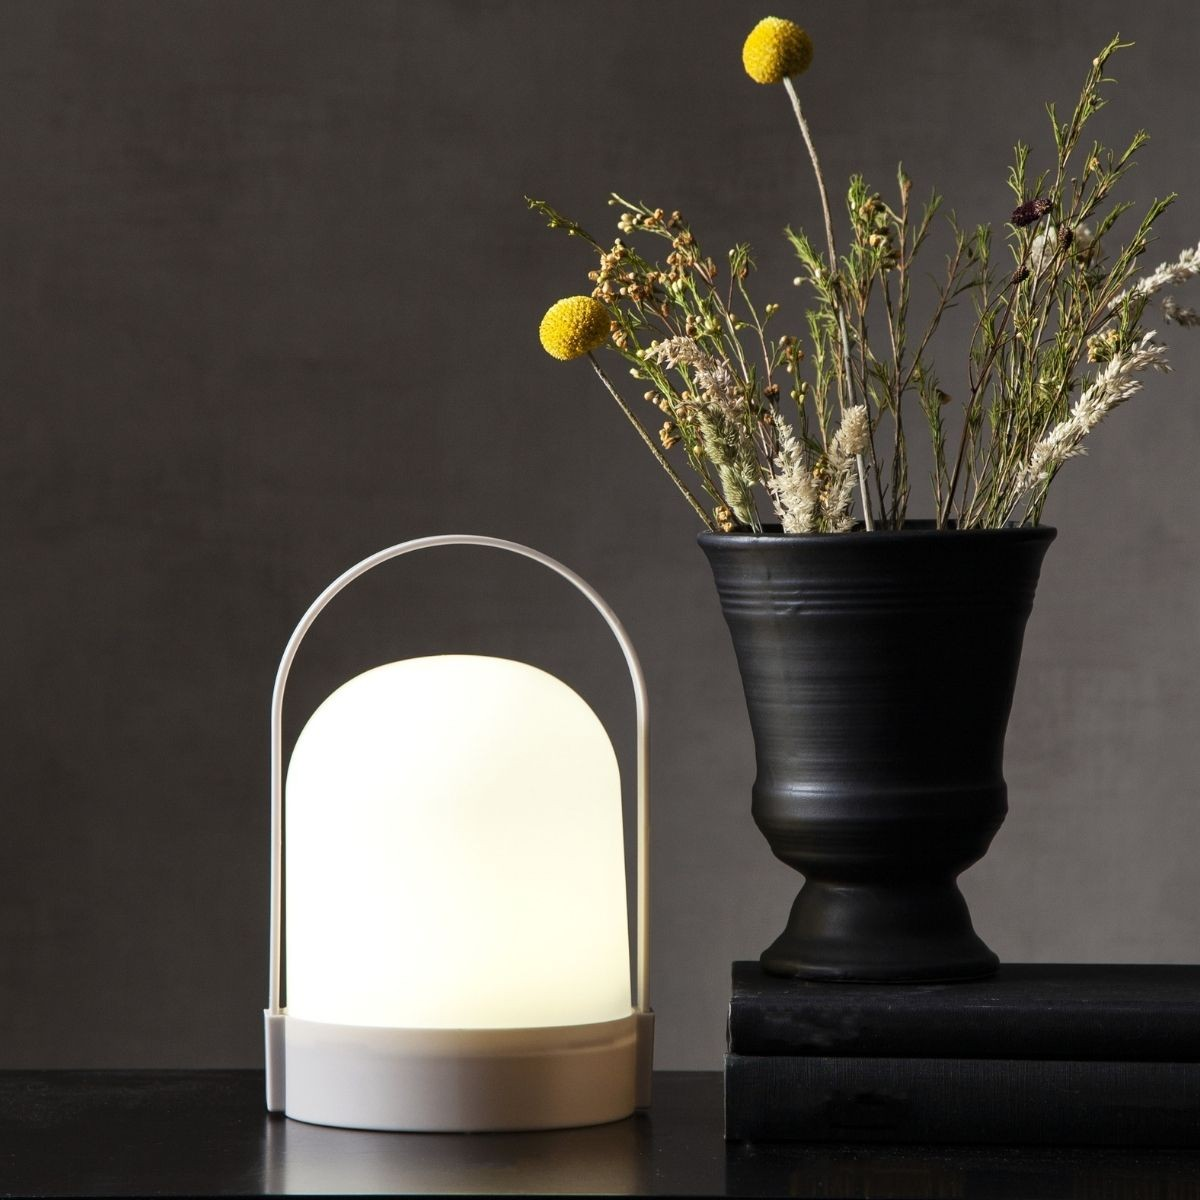 LED Laterne LETTE - warmweisses Licht - Batterie - Timer - H: 22cm- D: 14cm - indoor - weiss